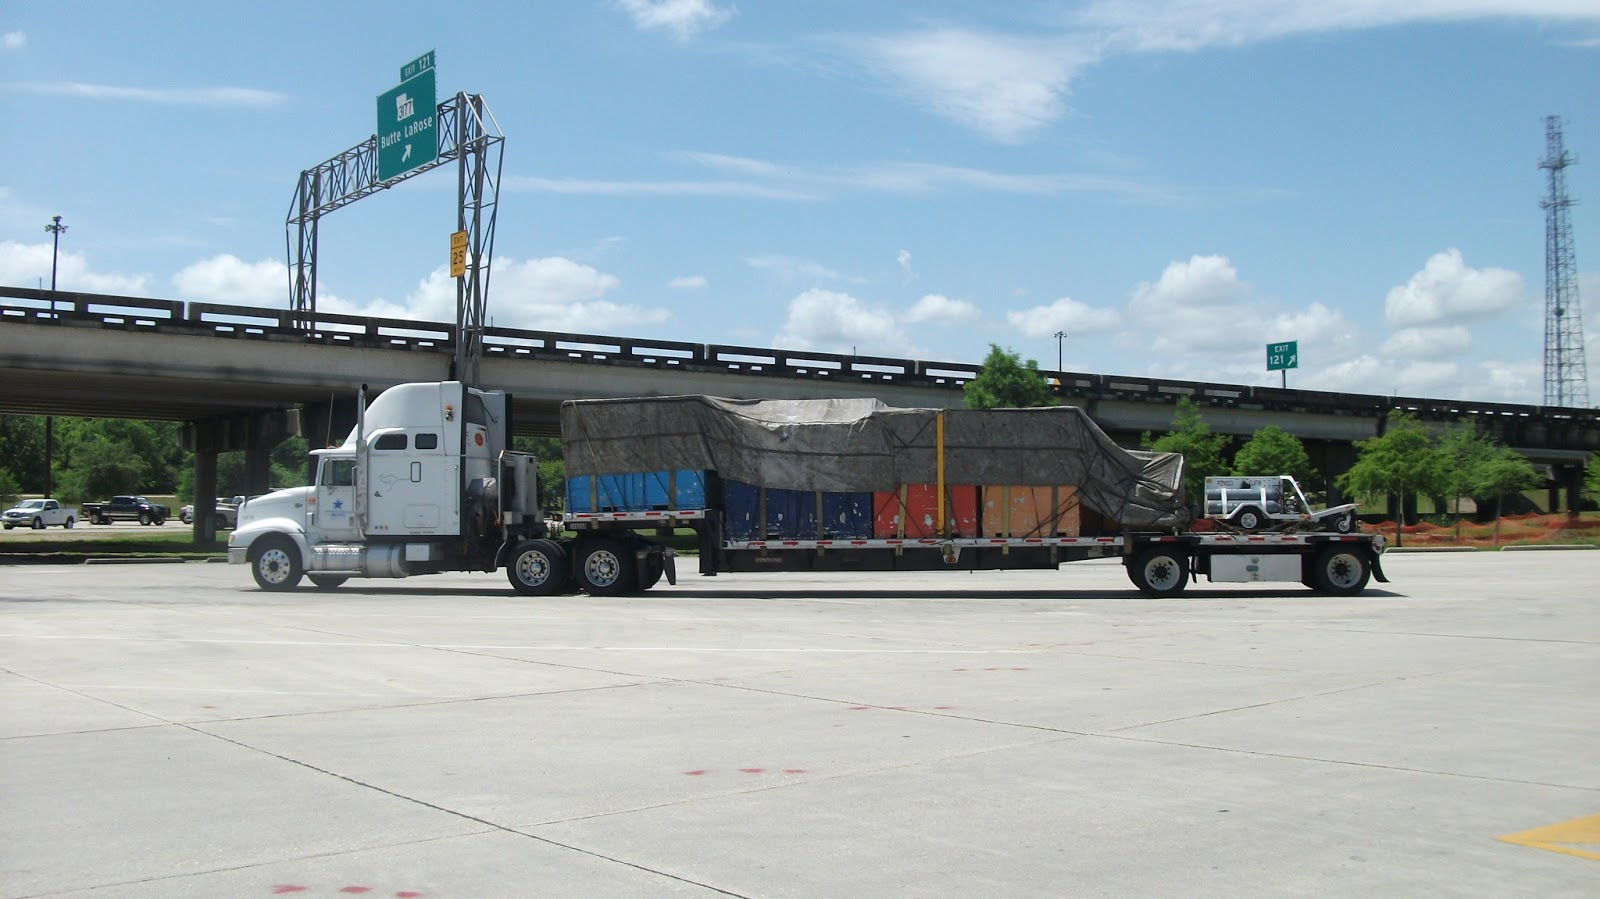 Used Trucks Jacksonville Fl >> Casey Capers - USA: May 2013